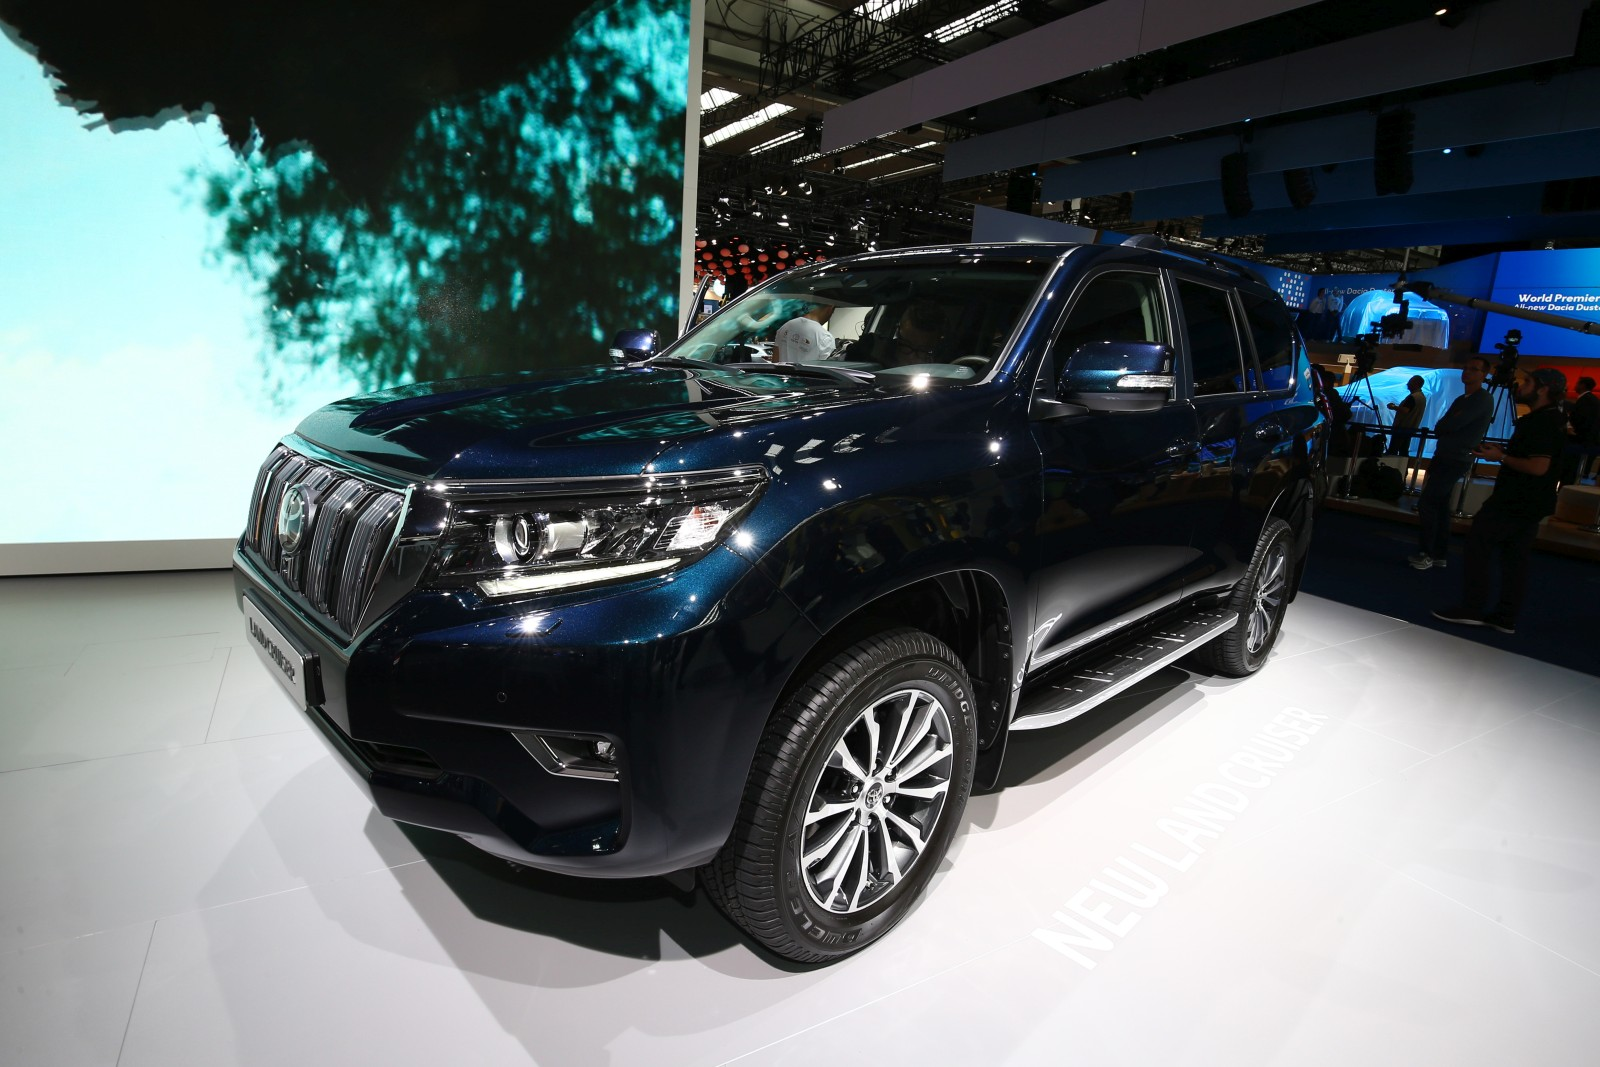 2018 Toyota Land Cruiser Prado Unveiled At The 2017 Frankfurt Auto